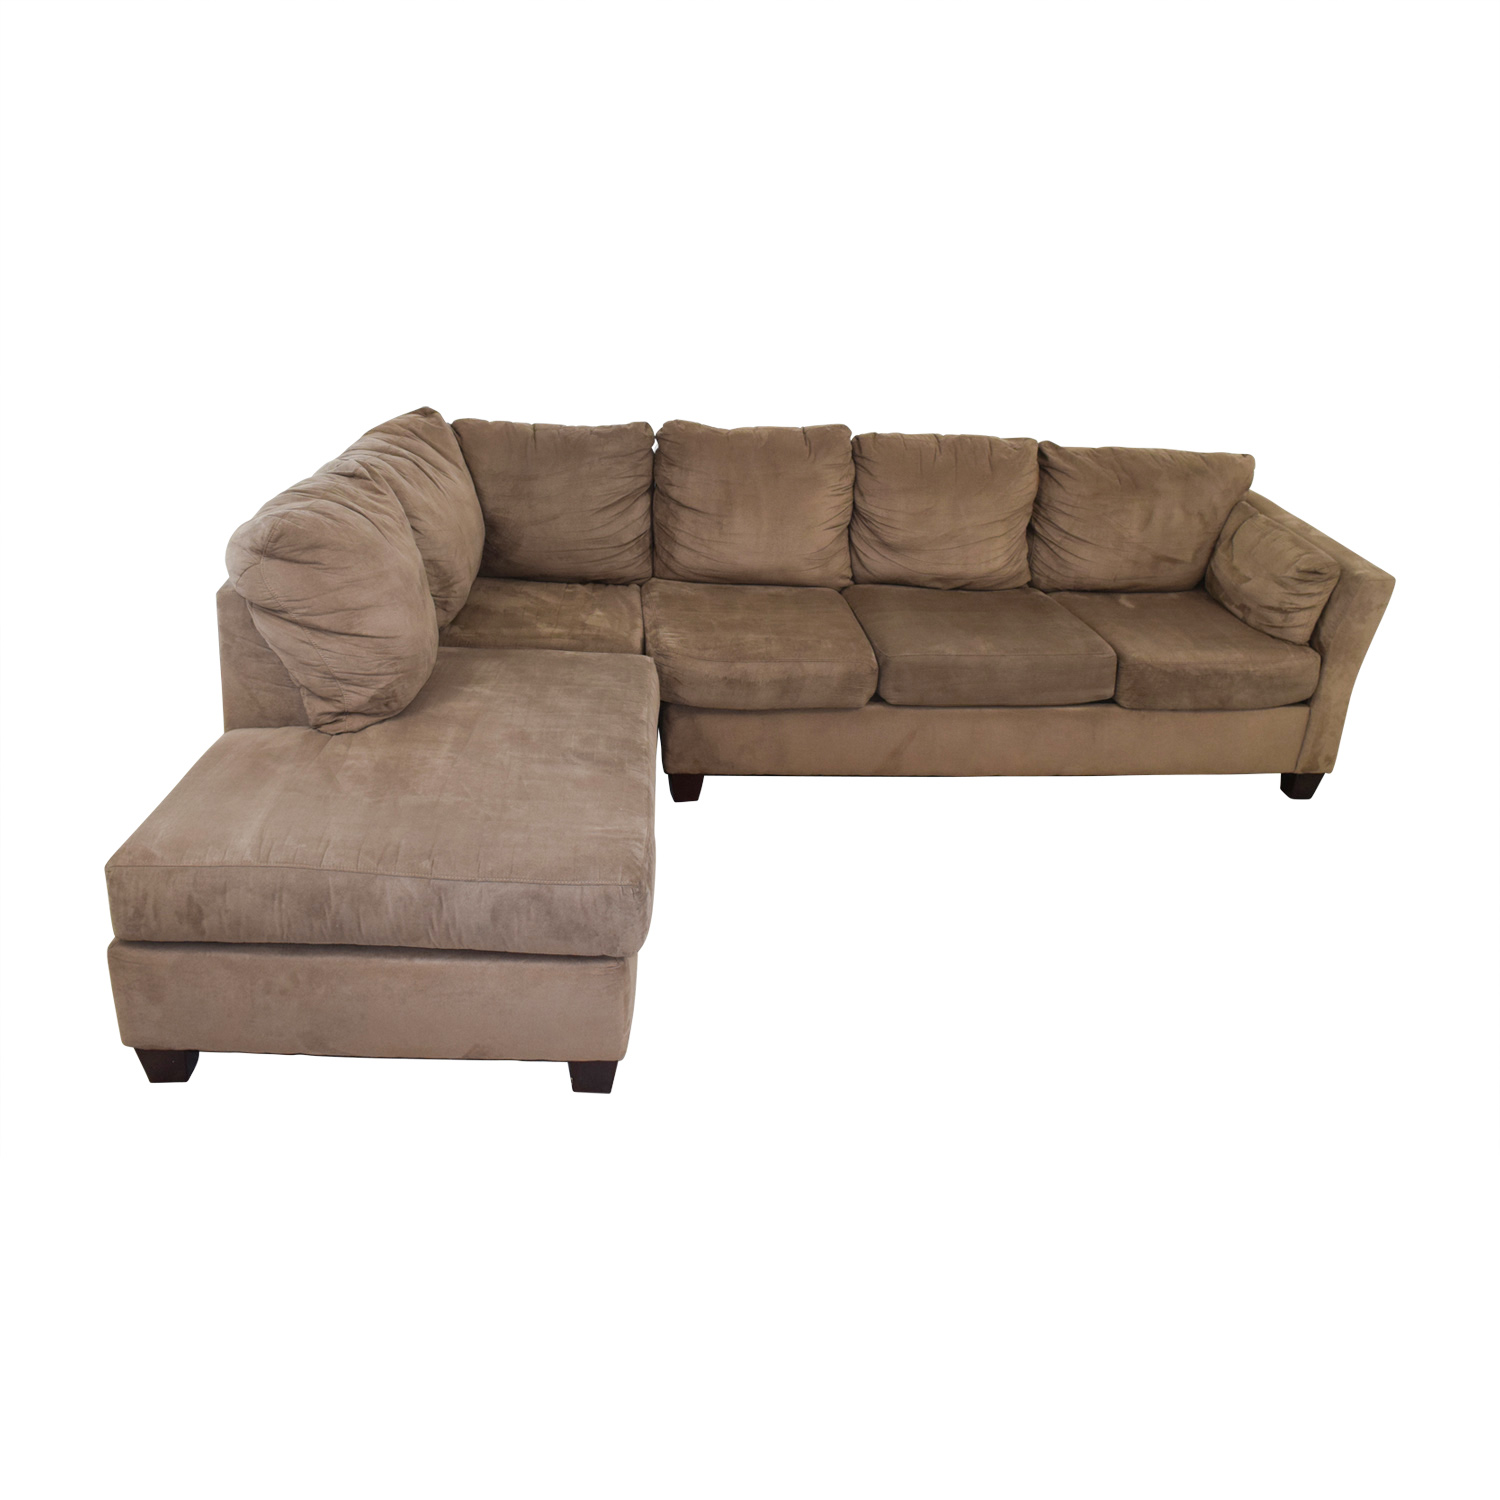 Bobs Furniture Bobs Furniture Brown Microfiber Sectional nyc